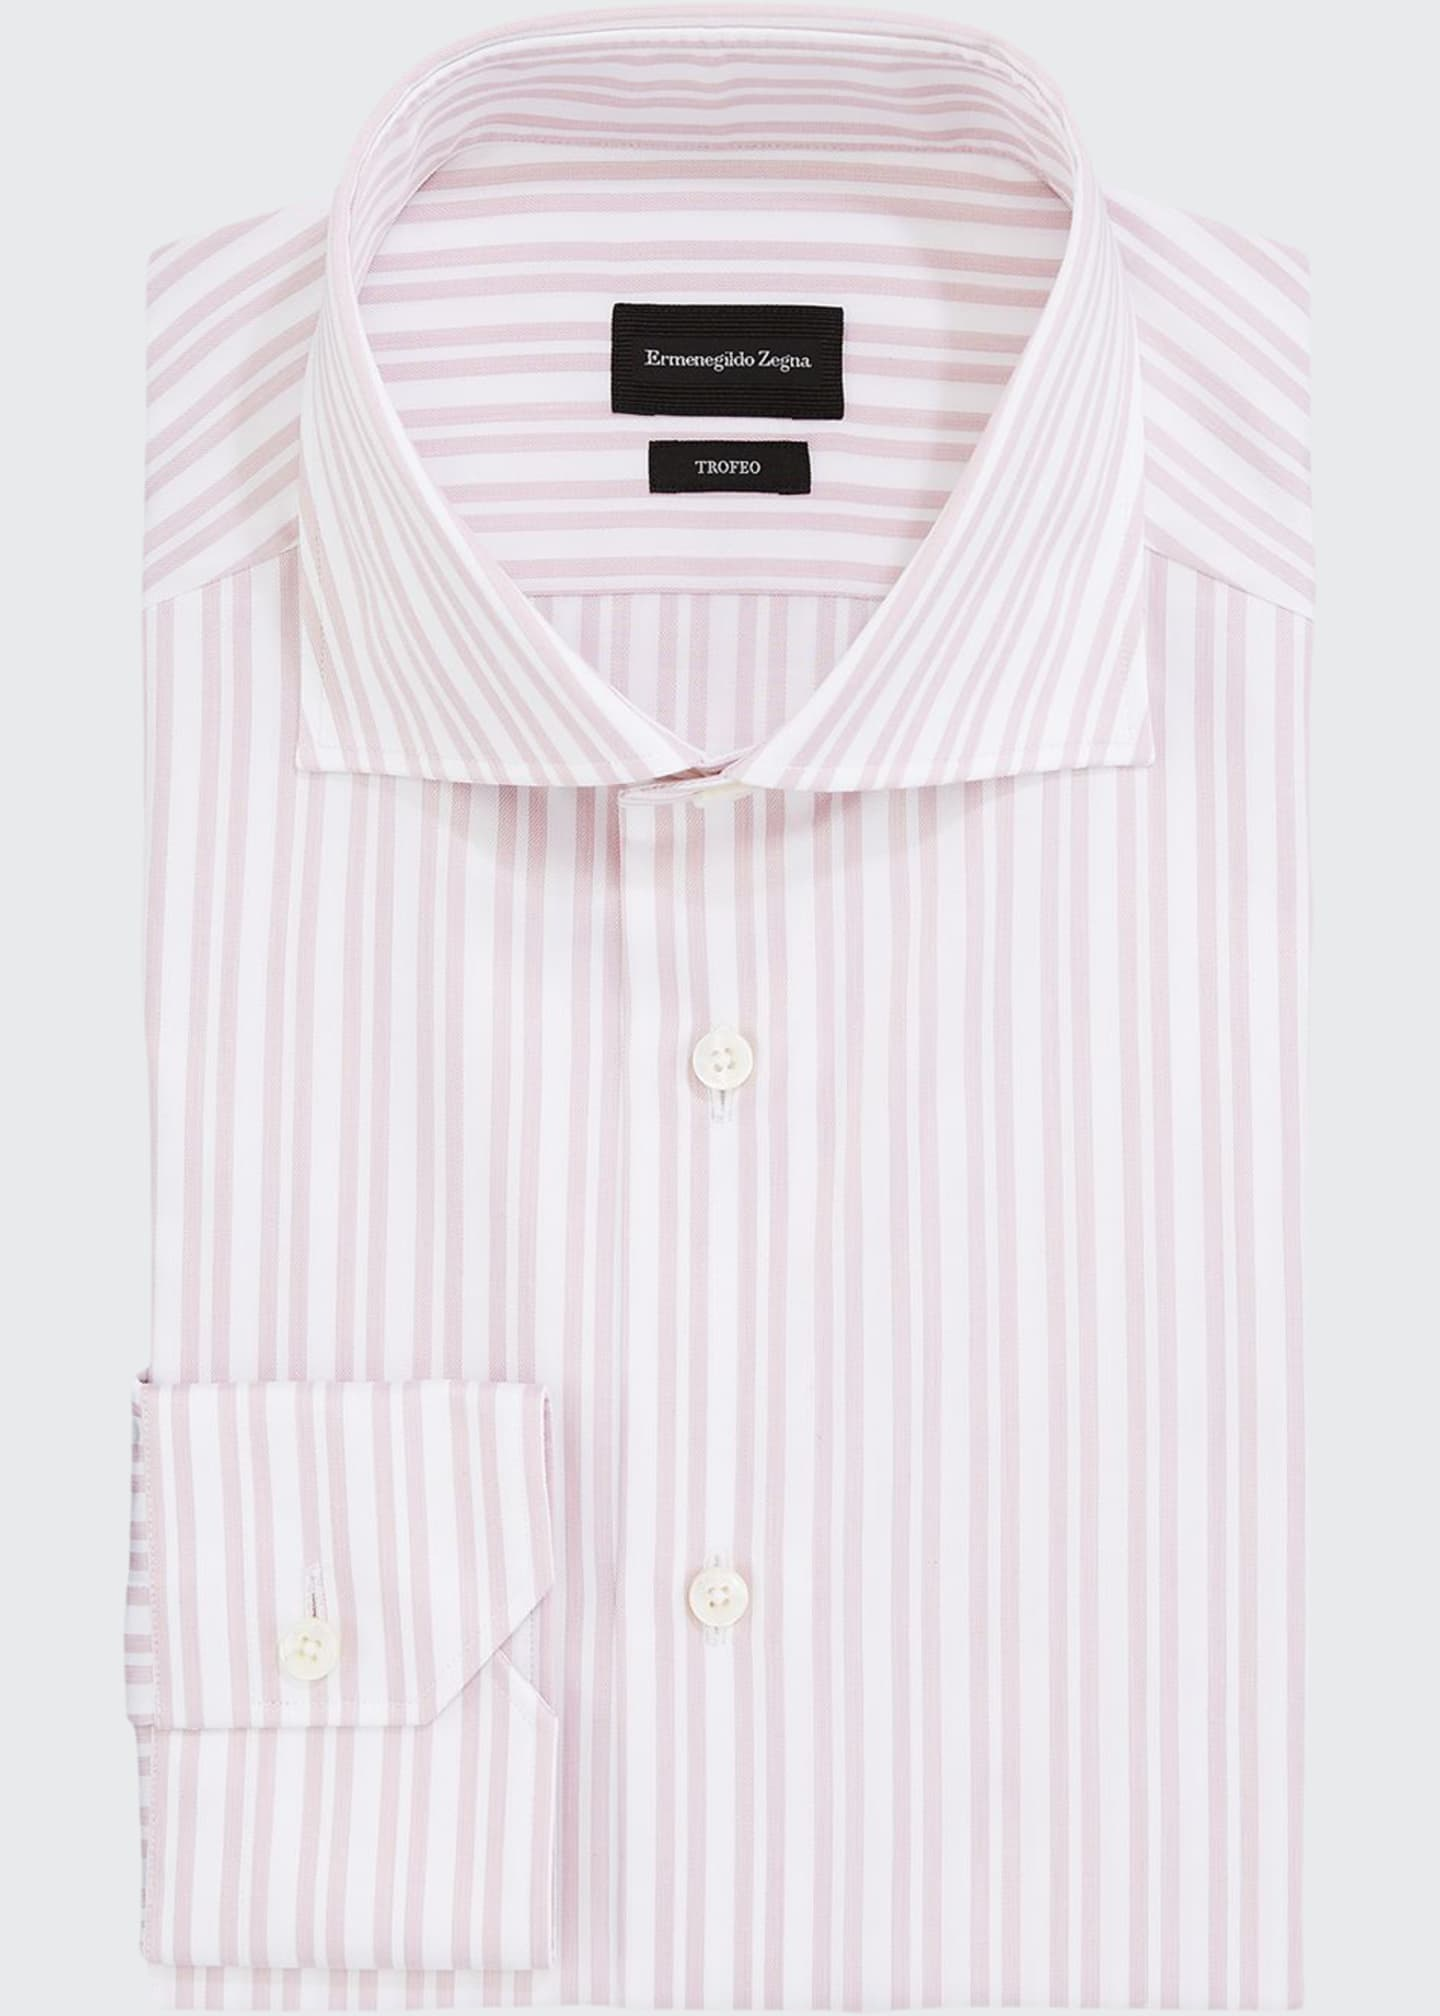 Ermenegildo Zegna Men's Trofeo Double-Stripe Dress Shirt